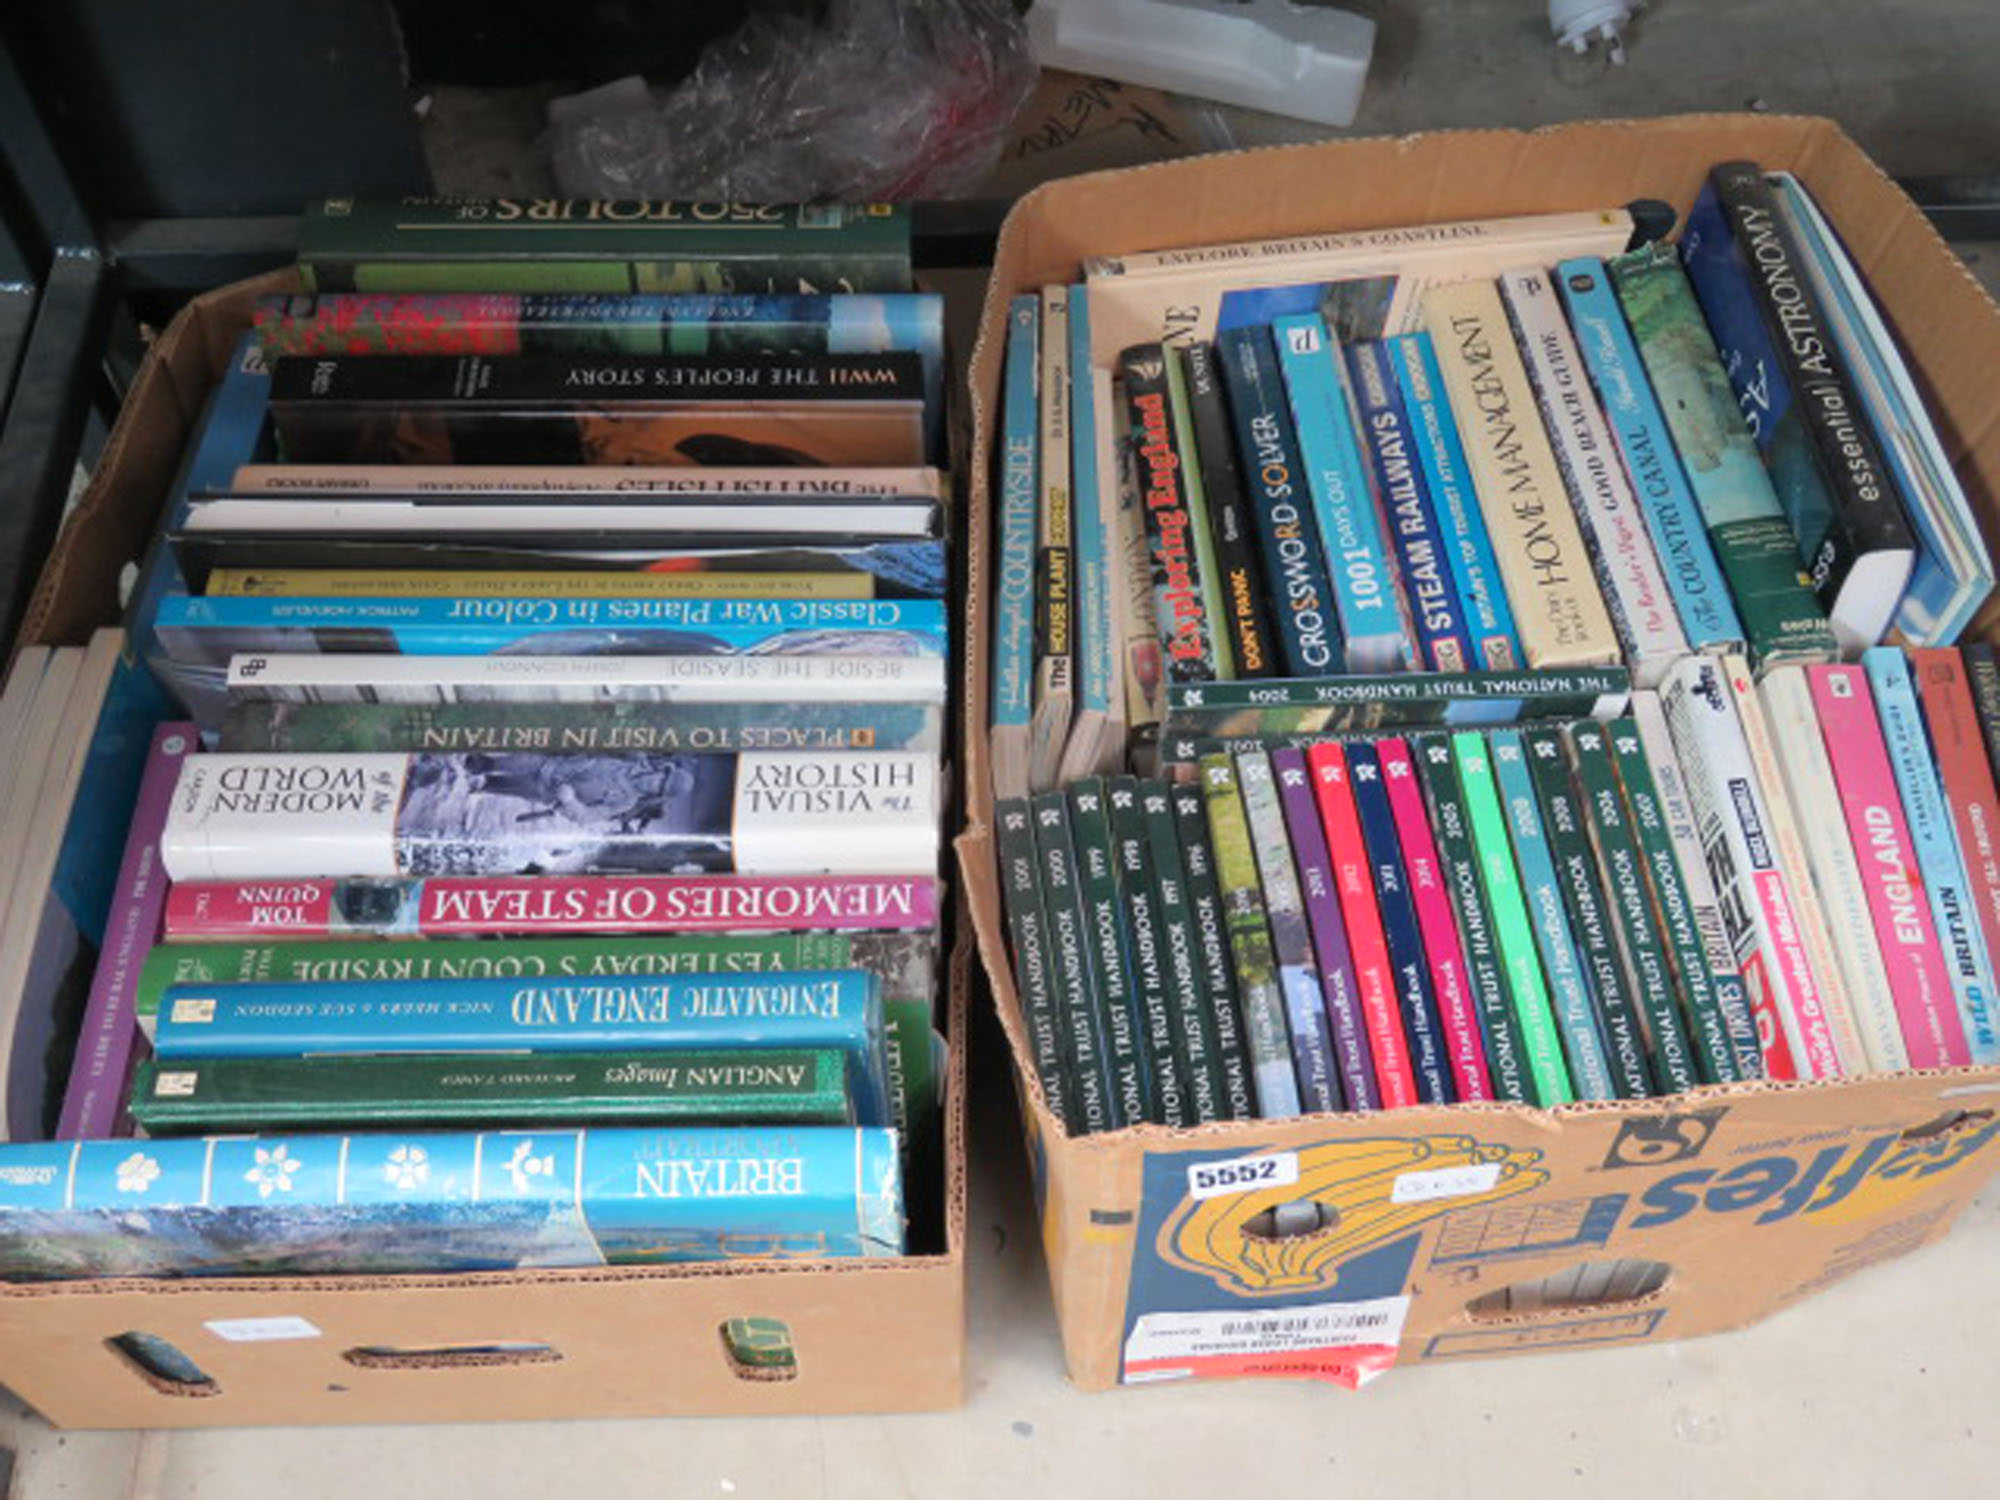 2 boxes containing National Trust hand books, hand management books, military and other reference